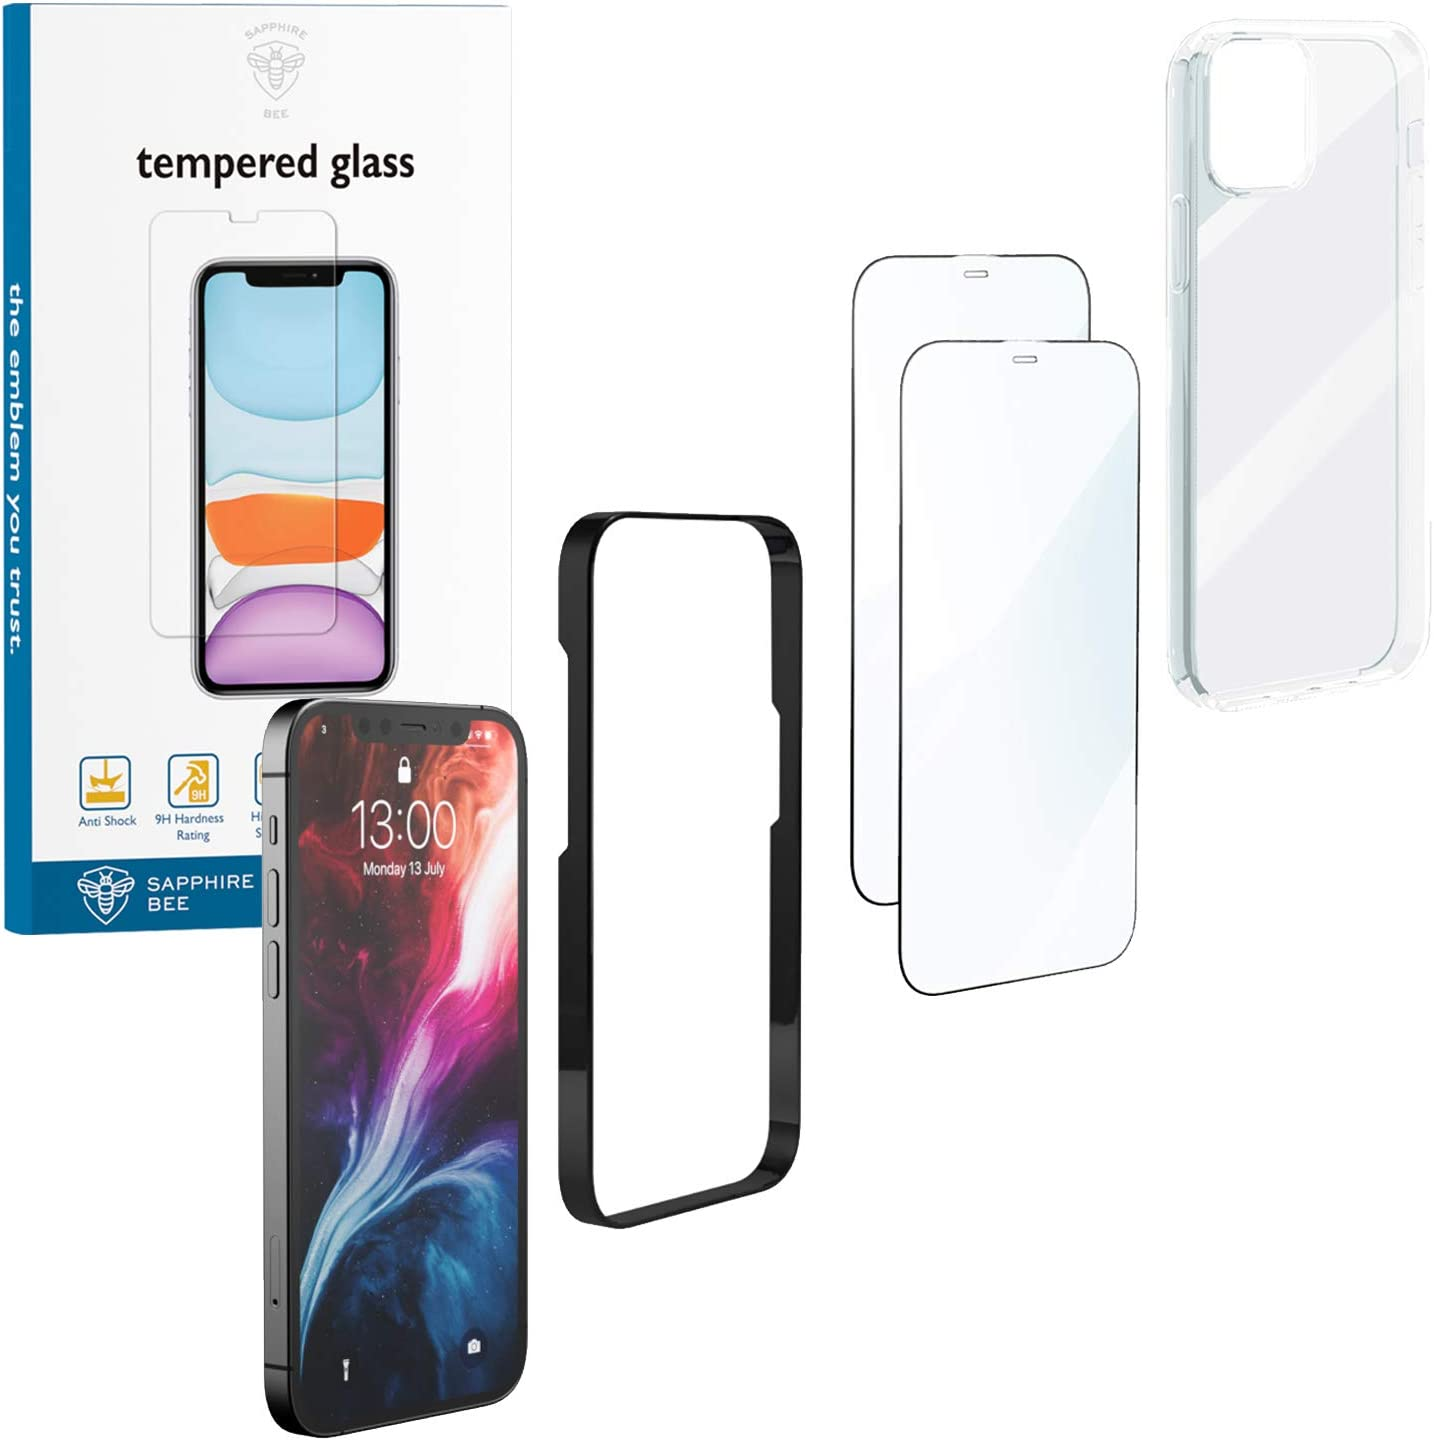 SAPPHIRE BEE Premium All-Around Protection Designed for iPhone 12 & 12 PRO Edge to Edge 9H Shatterproof Glass with Shock-Proof TPU Case - 1x Case + 2X Glass